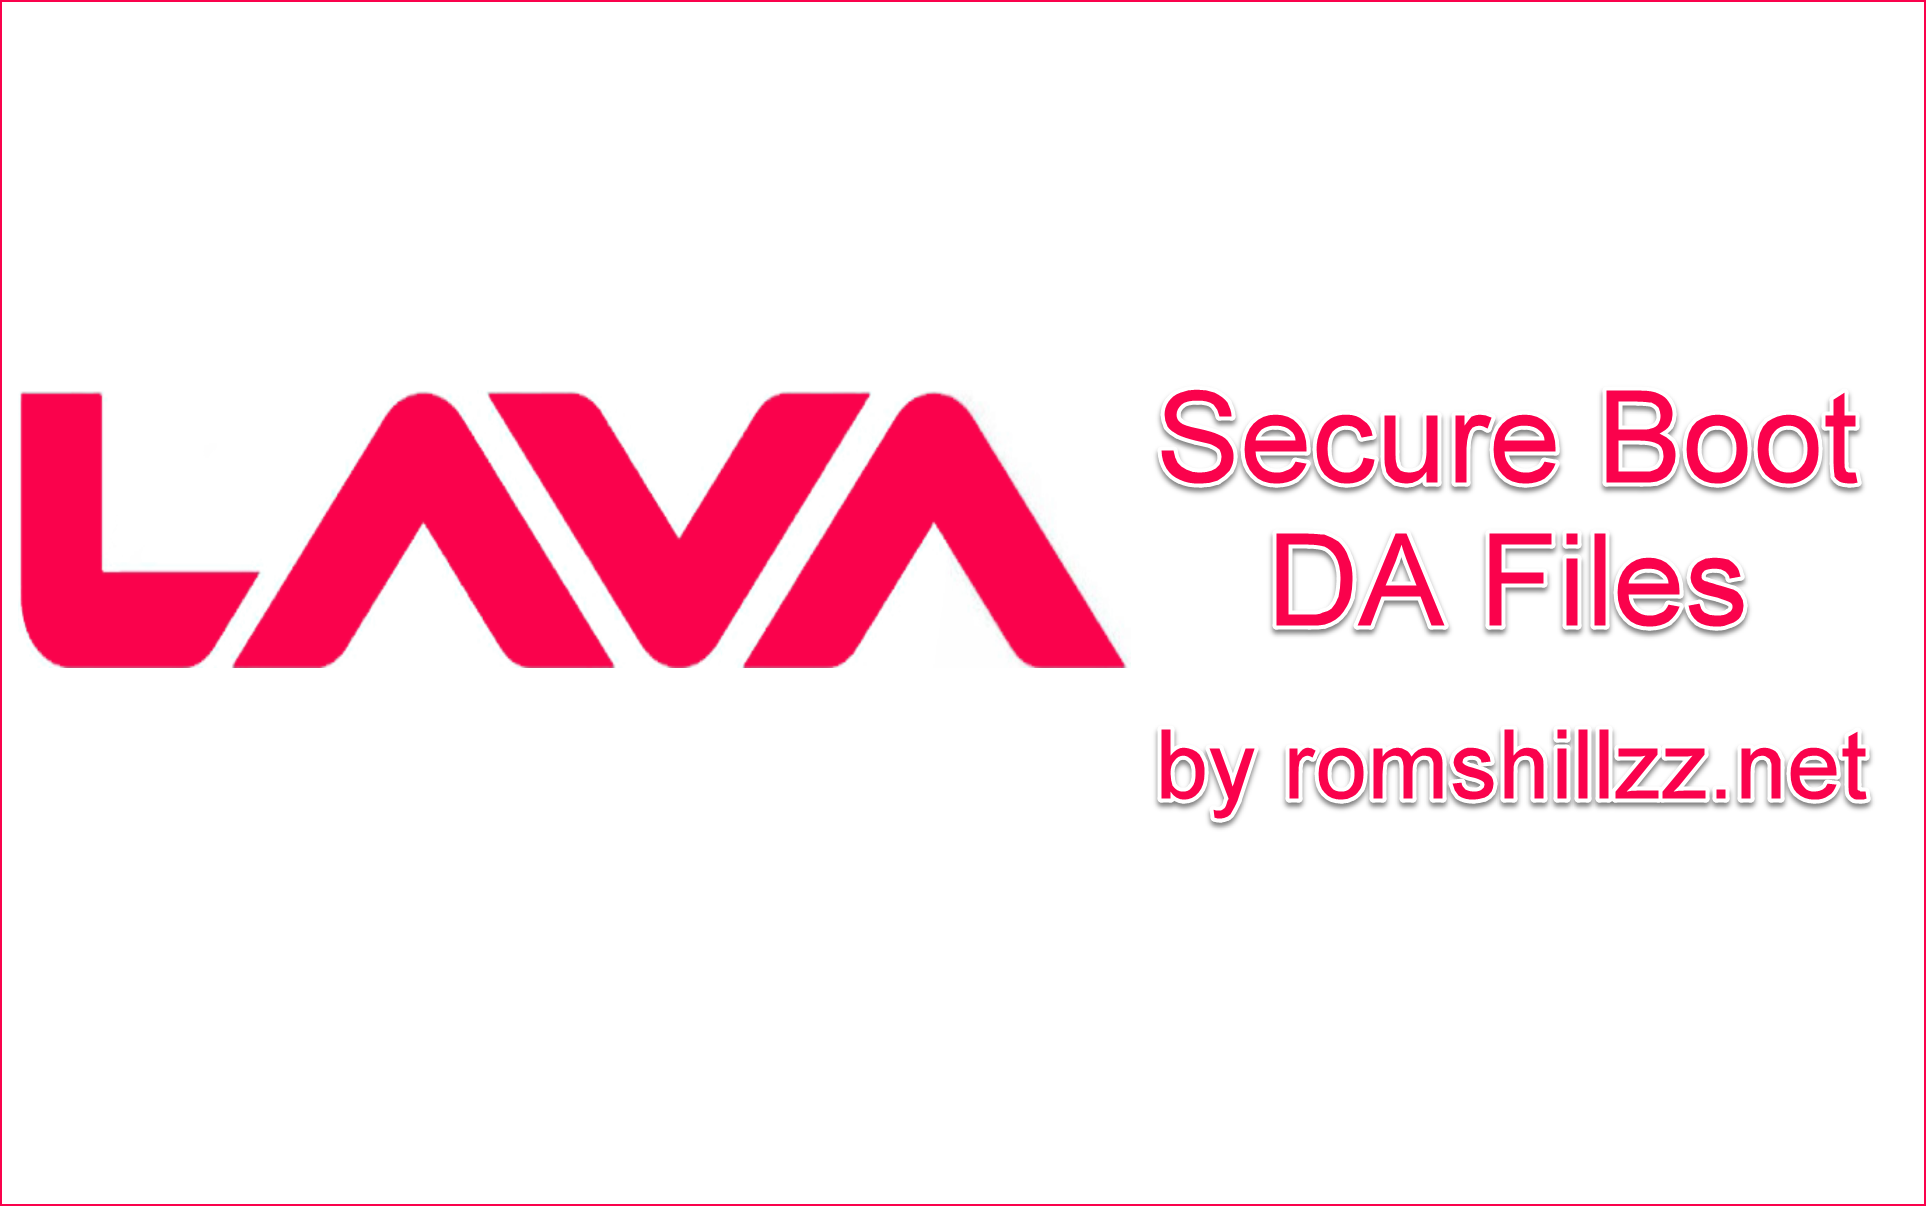 lava-secure-boot.png